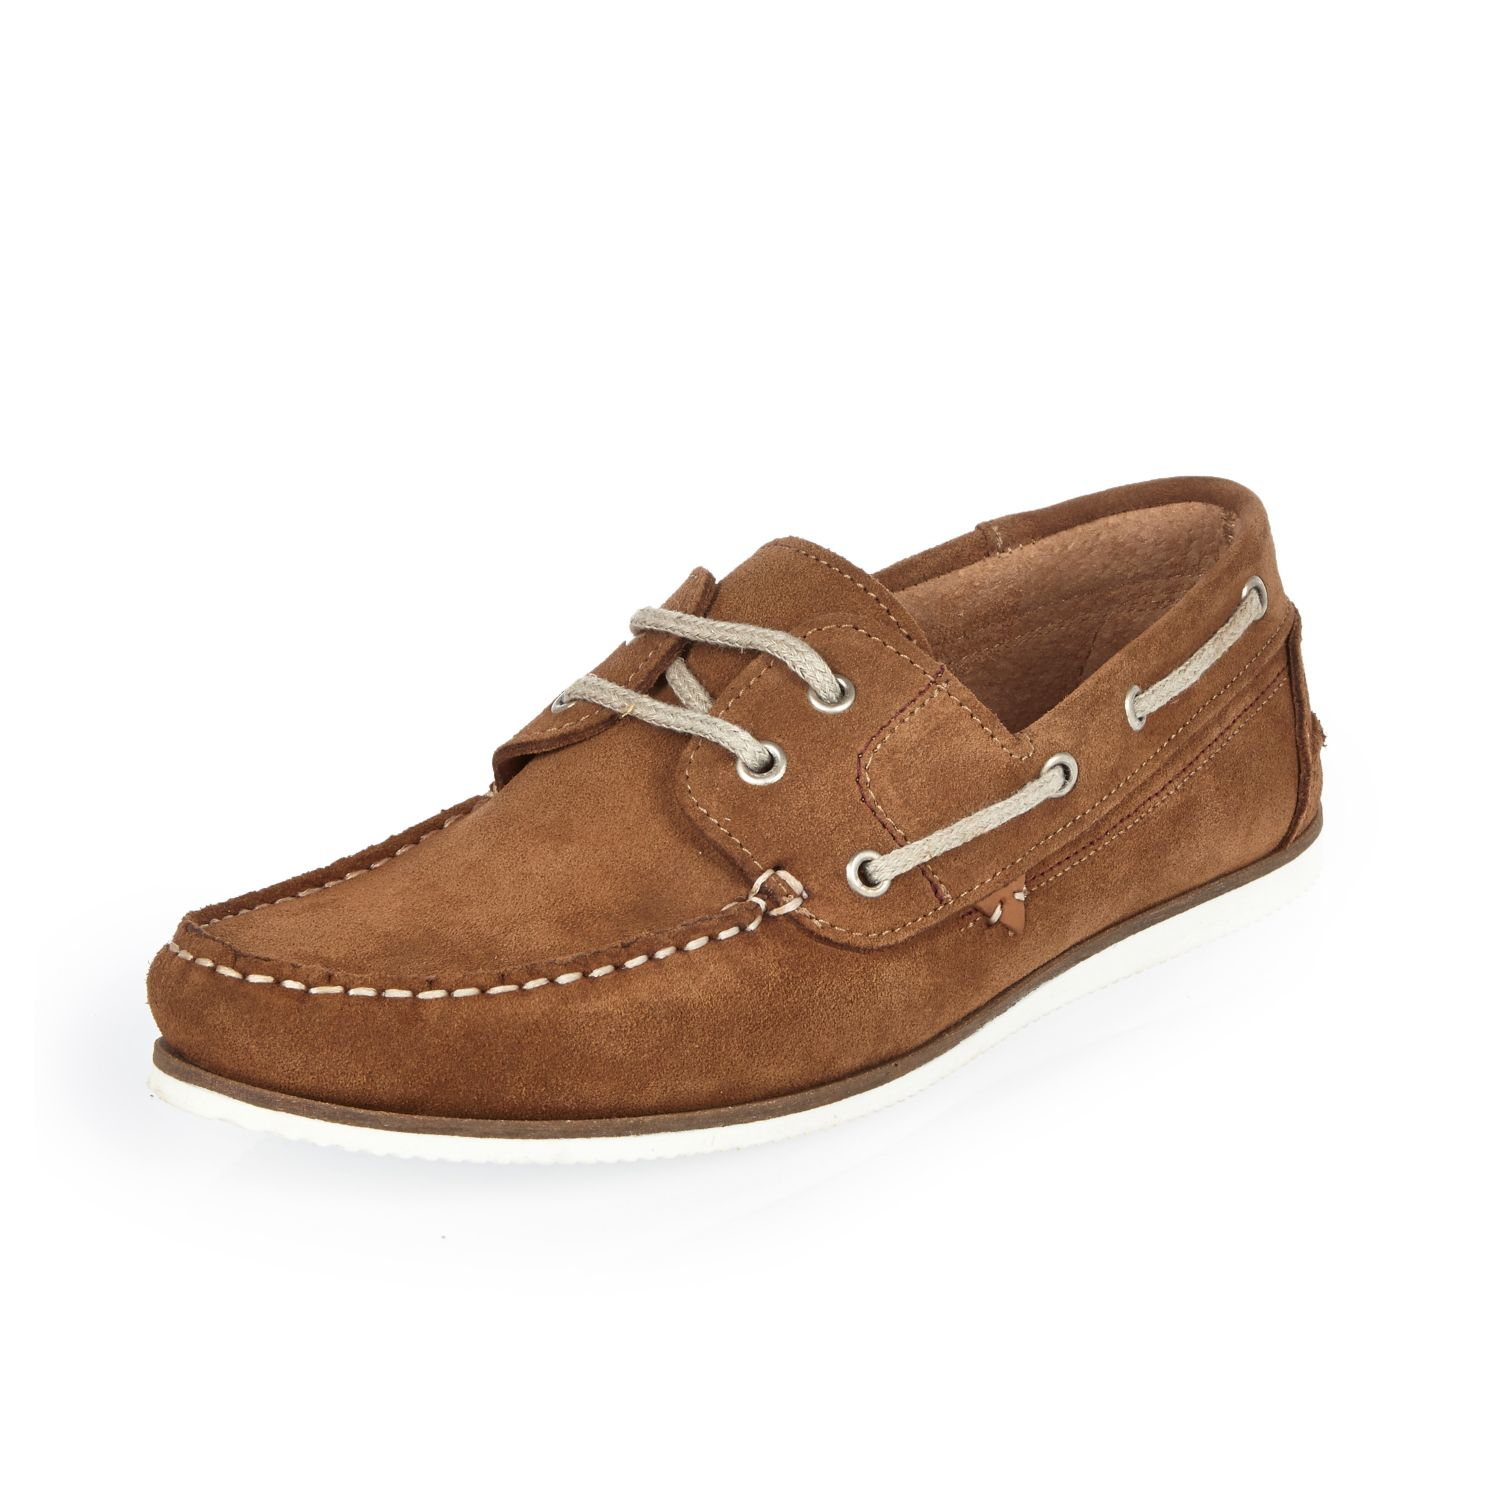 river island suede boat shoes in brown for lyst